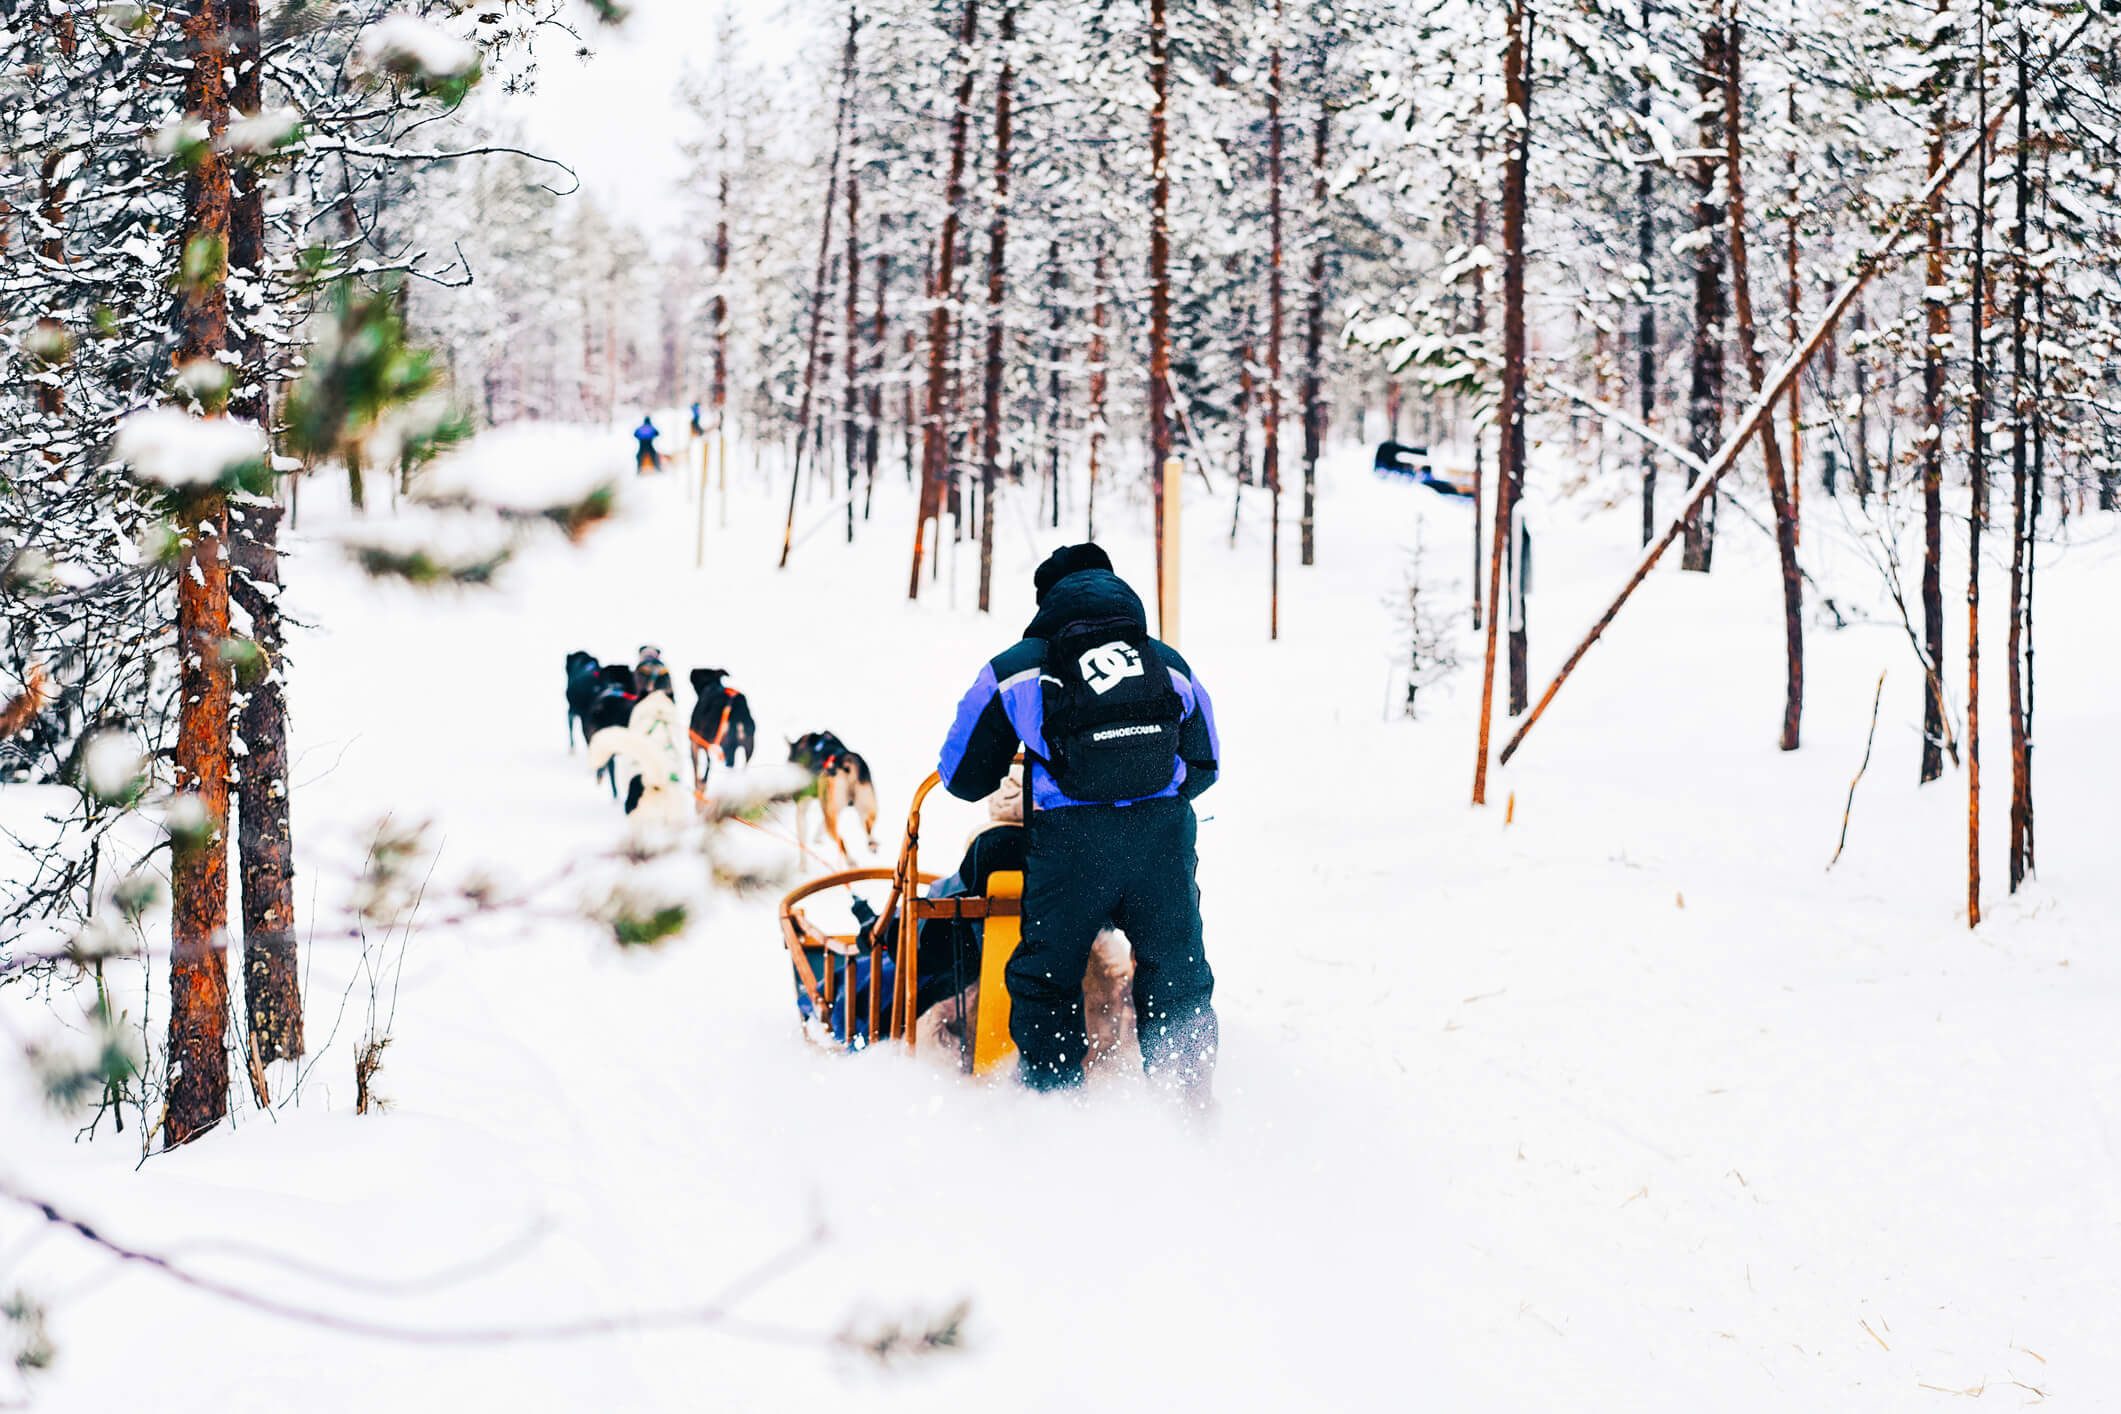 People-in-Husky-dog-sled-in-Finland-in-Lapland-1058941340_2125x1416